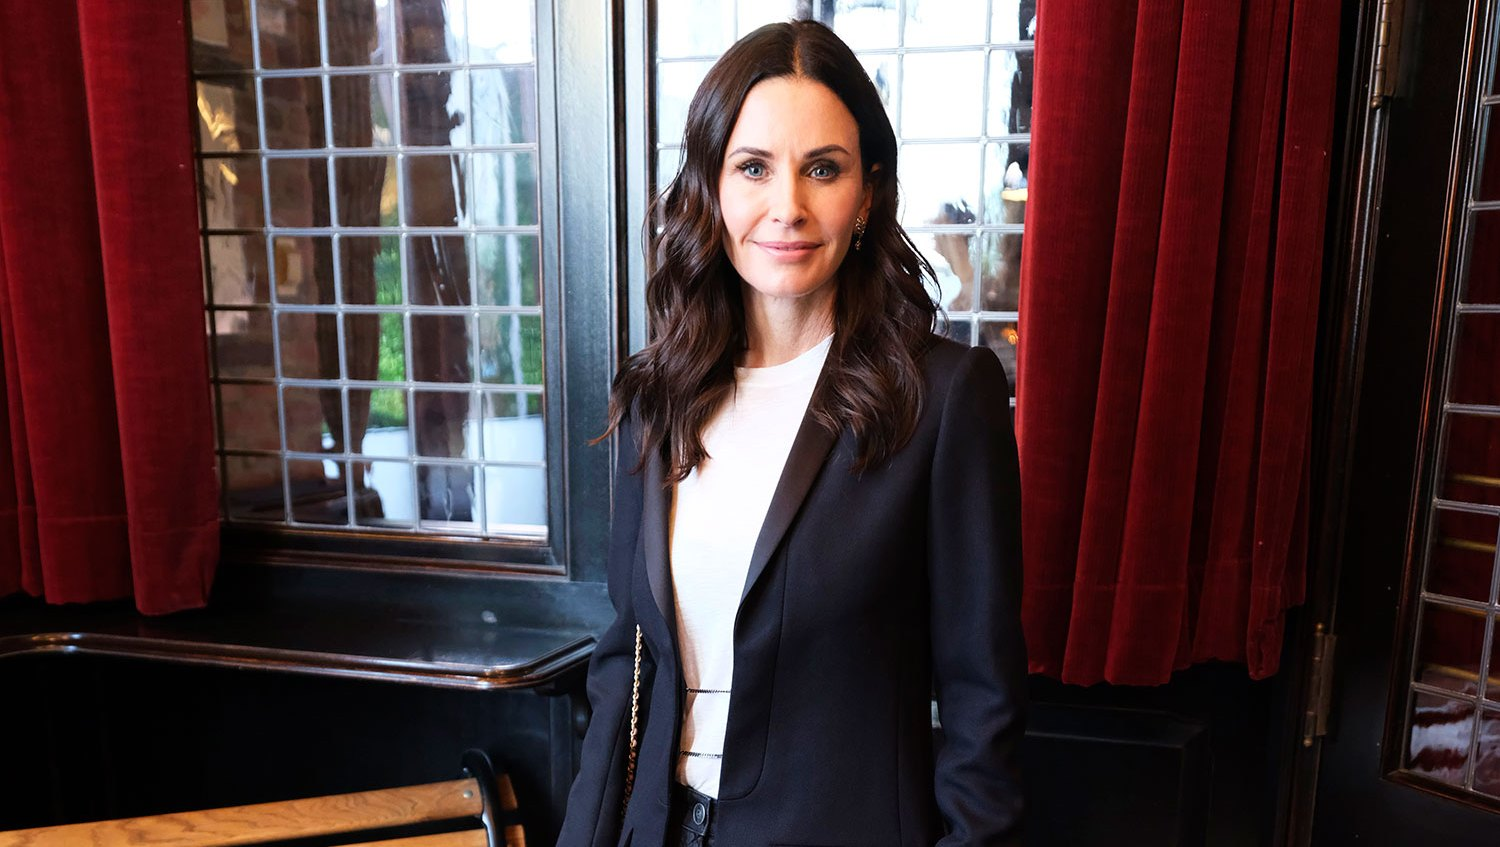 Courteney Cox: Why I Opened Up About Having Multiple Miscarriages in New Web Series